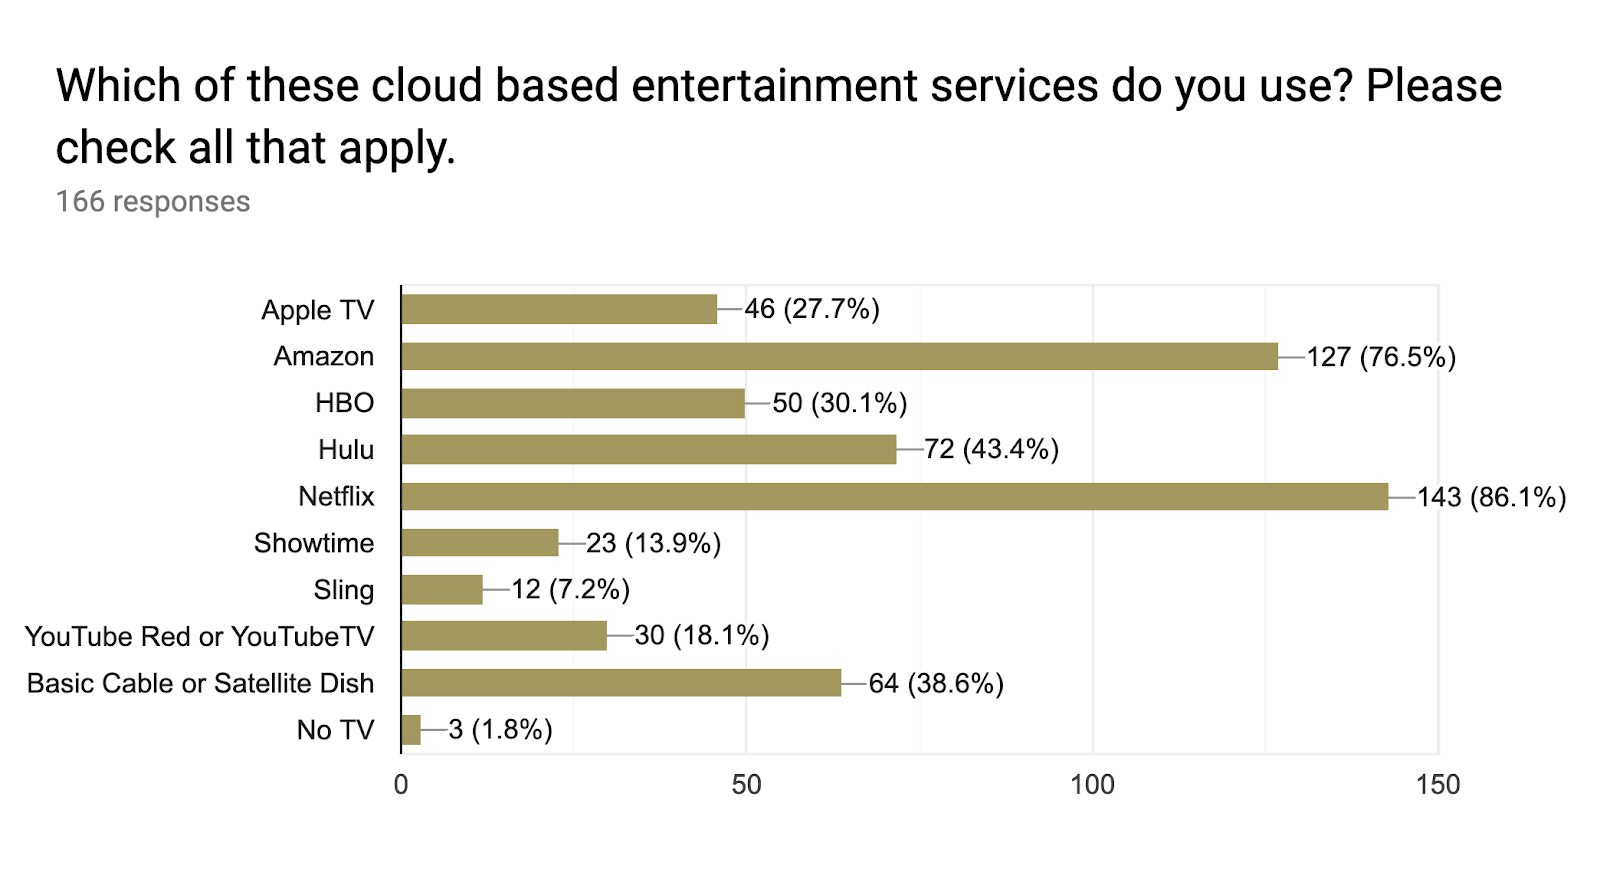 Forms response chart. Question title: Which of these cloud based entertainment services do you use? Please check all that apply.. Number of responses: 166 responses.